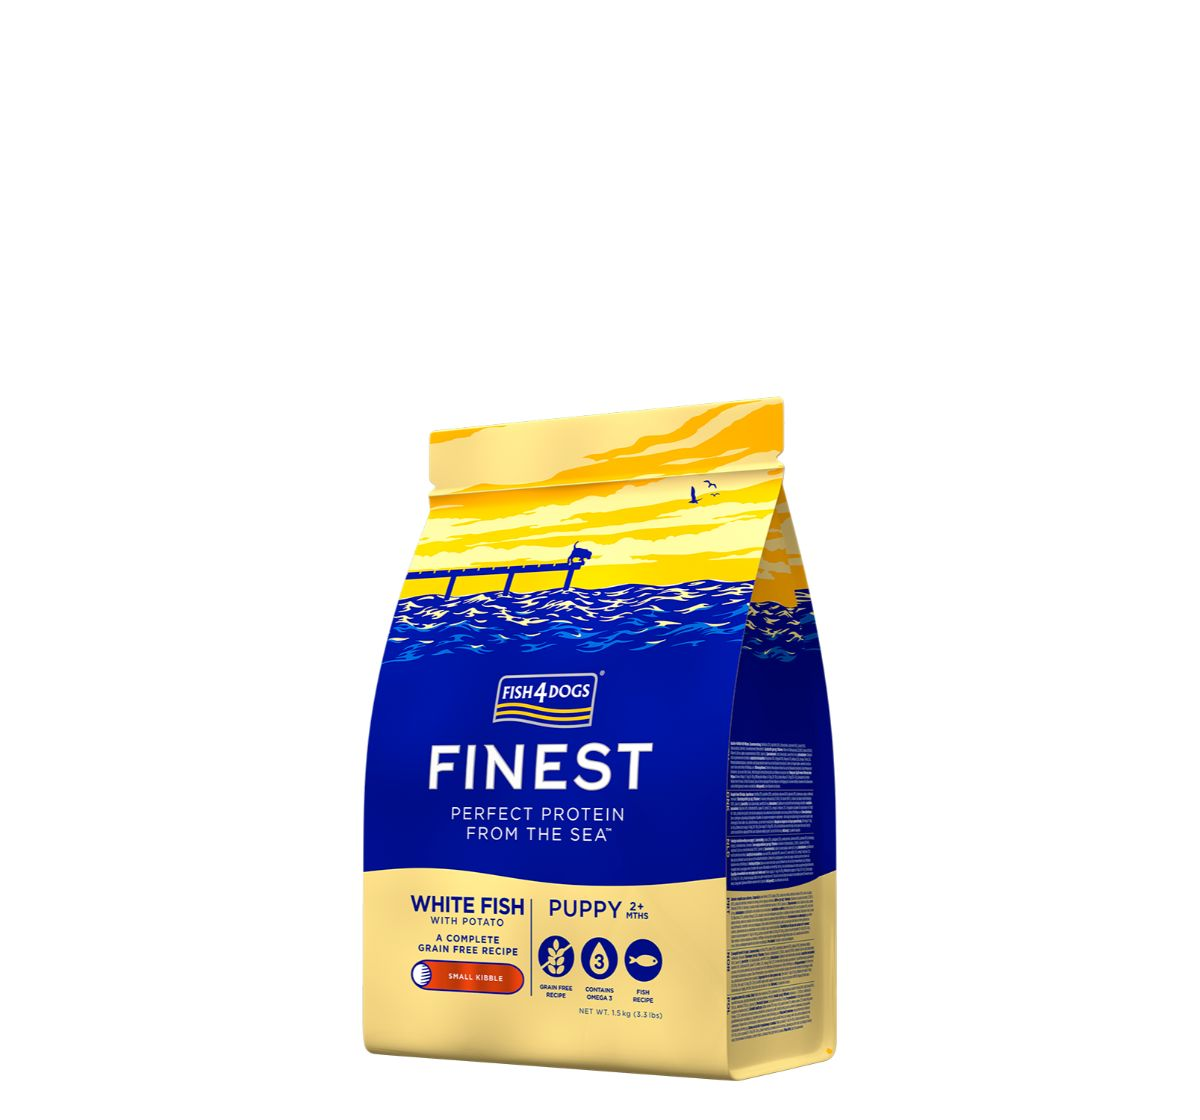 Fish4Dogs Finest Ocean White Fish Puppy Food - 1.5 Kg